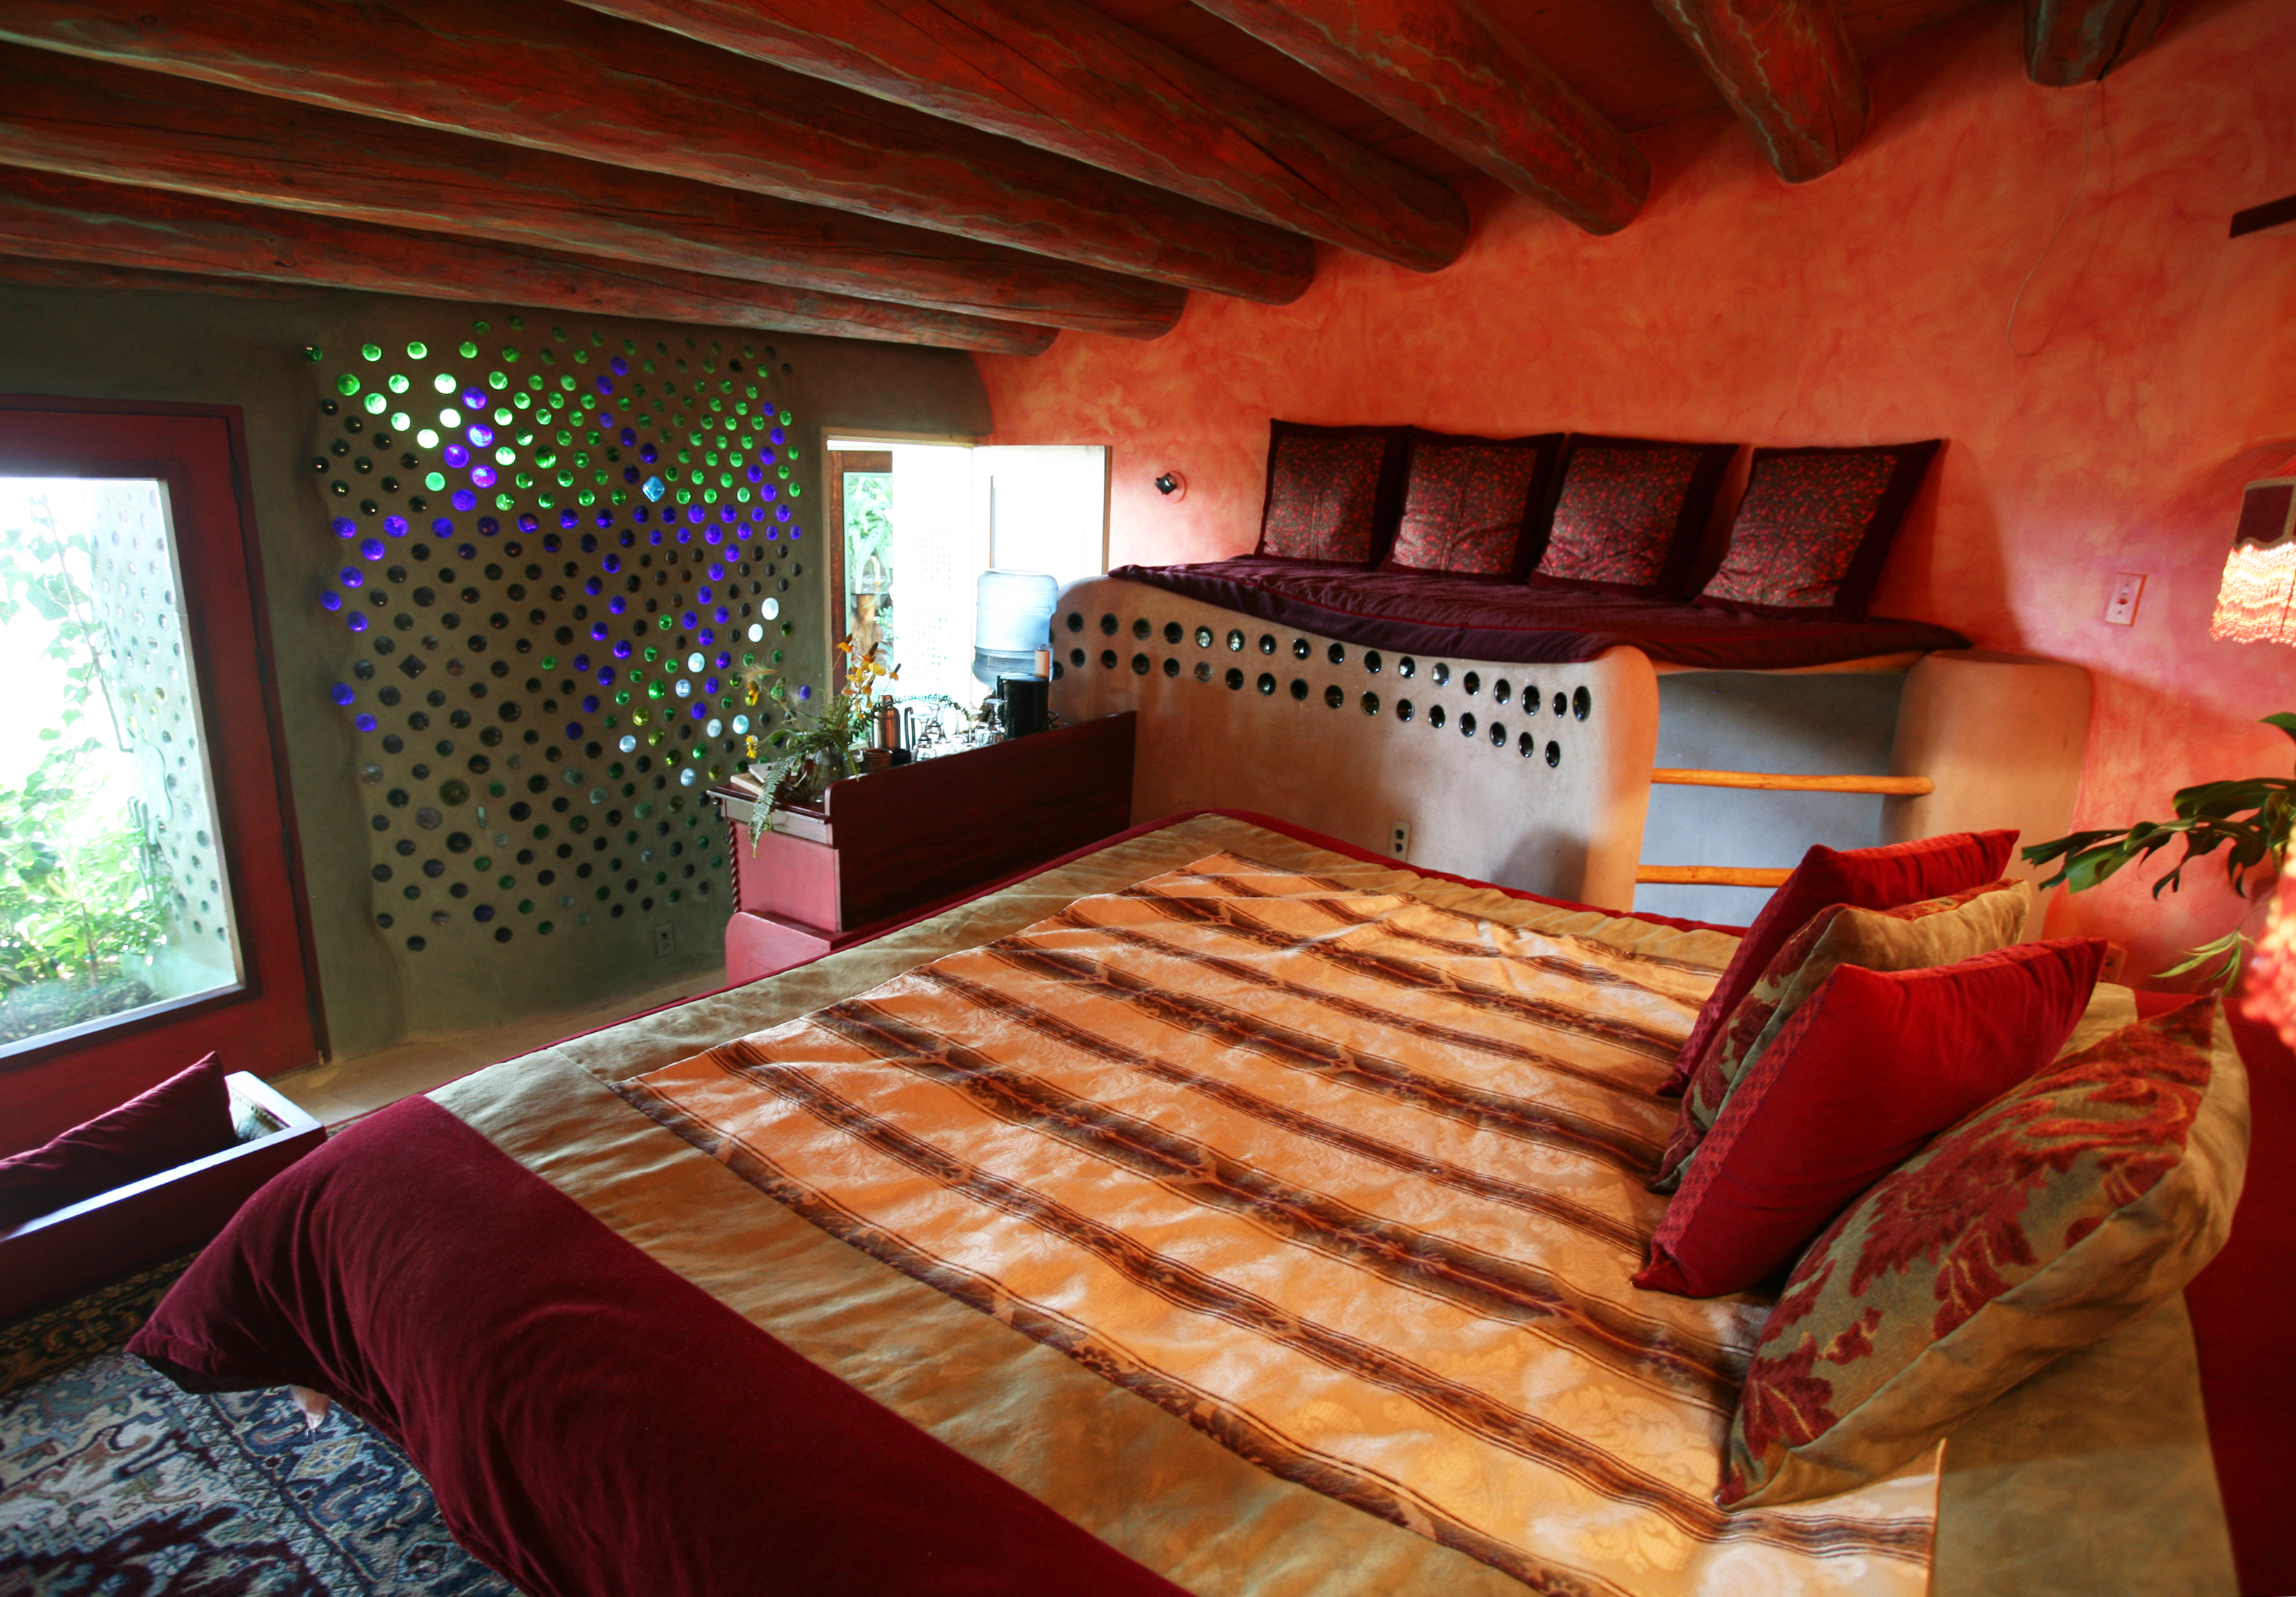 7 earthship rentals taos new mexico usa hungrycityhippy for Cabins in taos nm